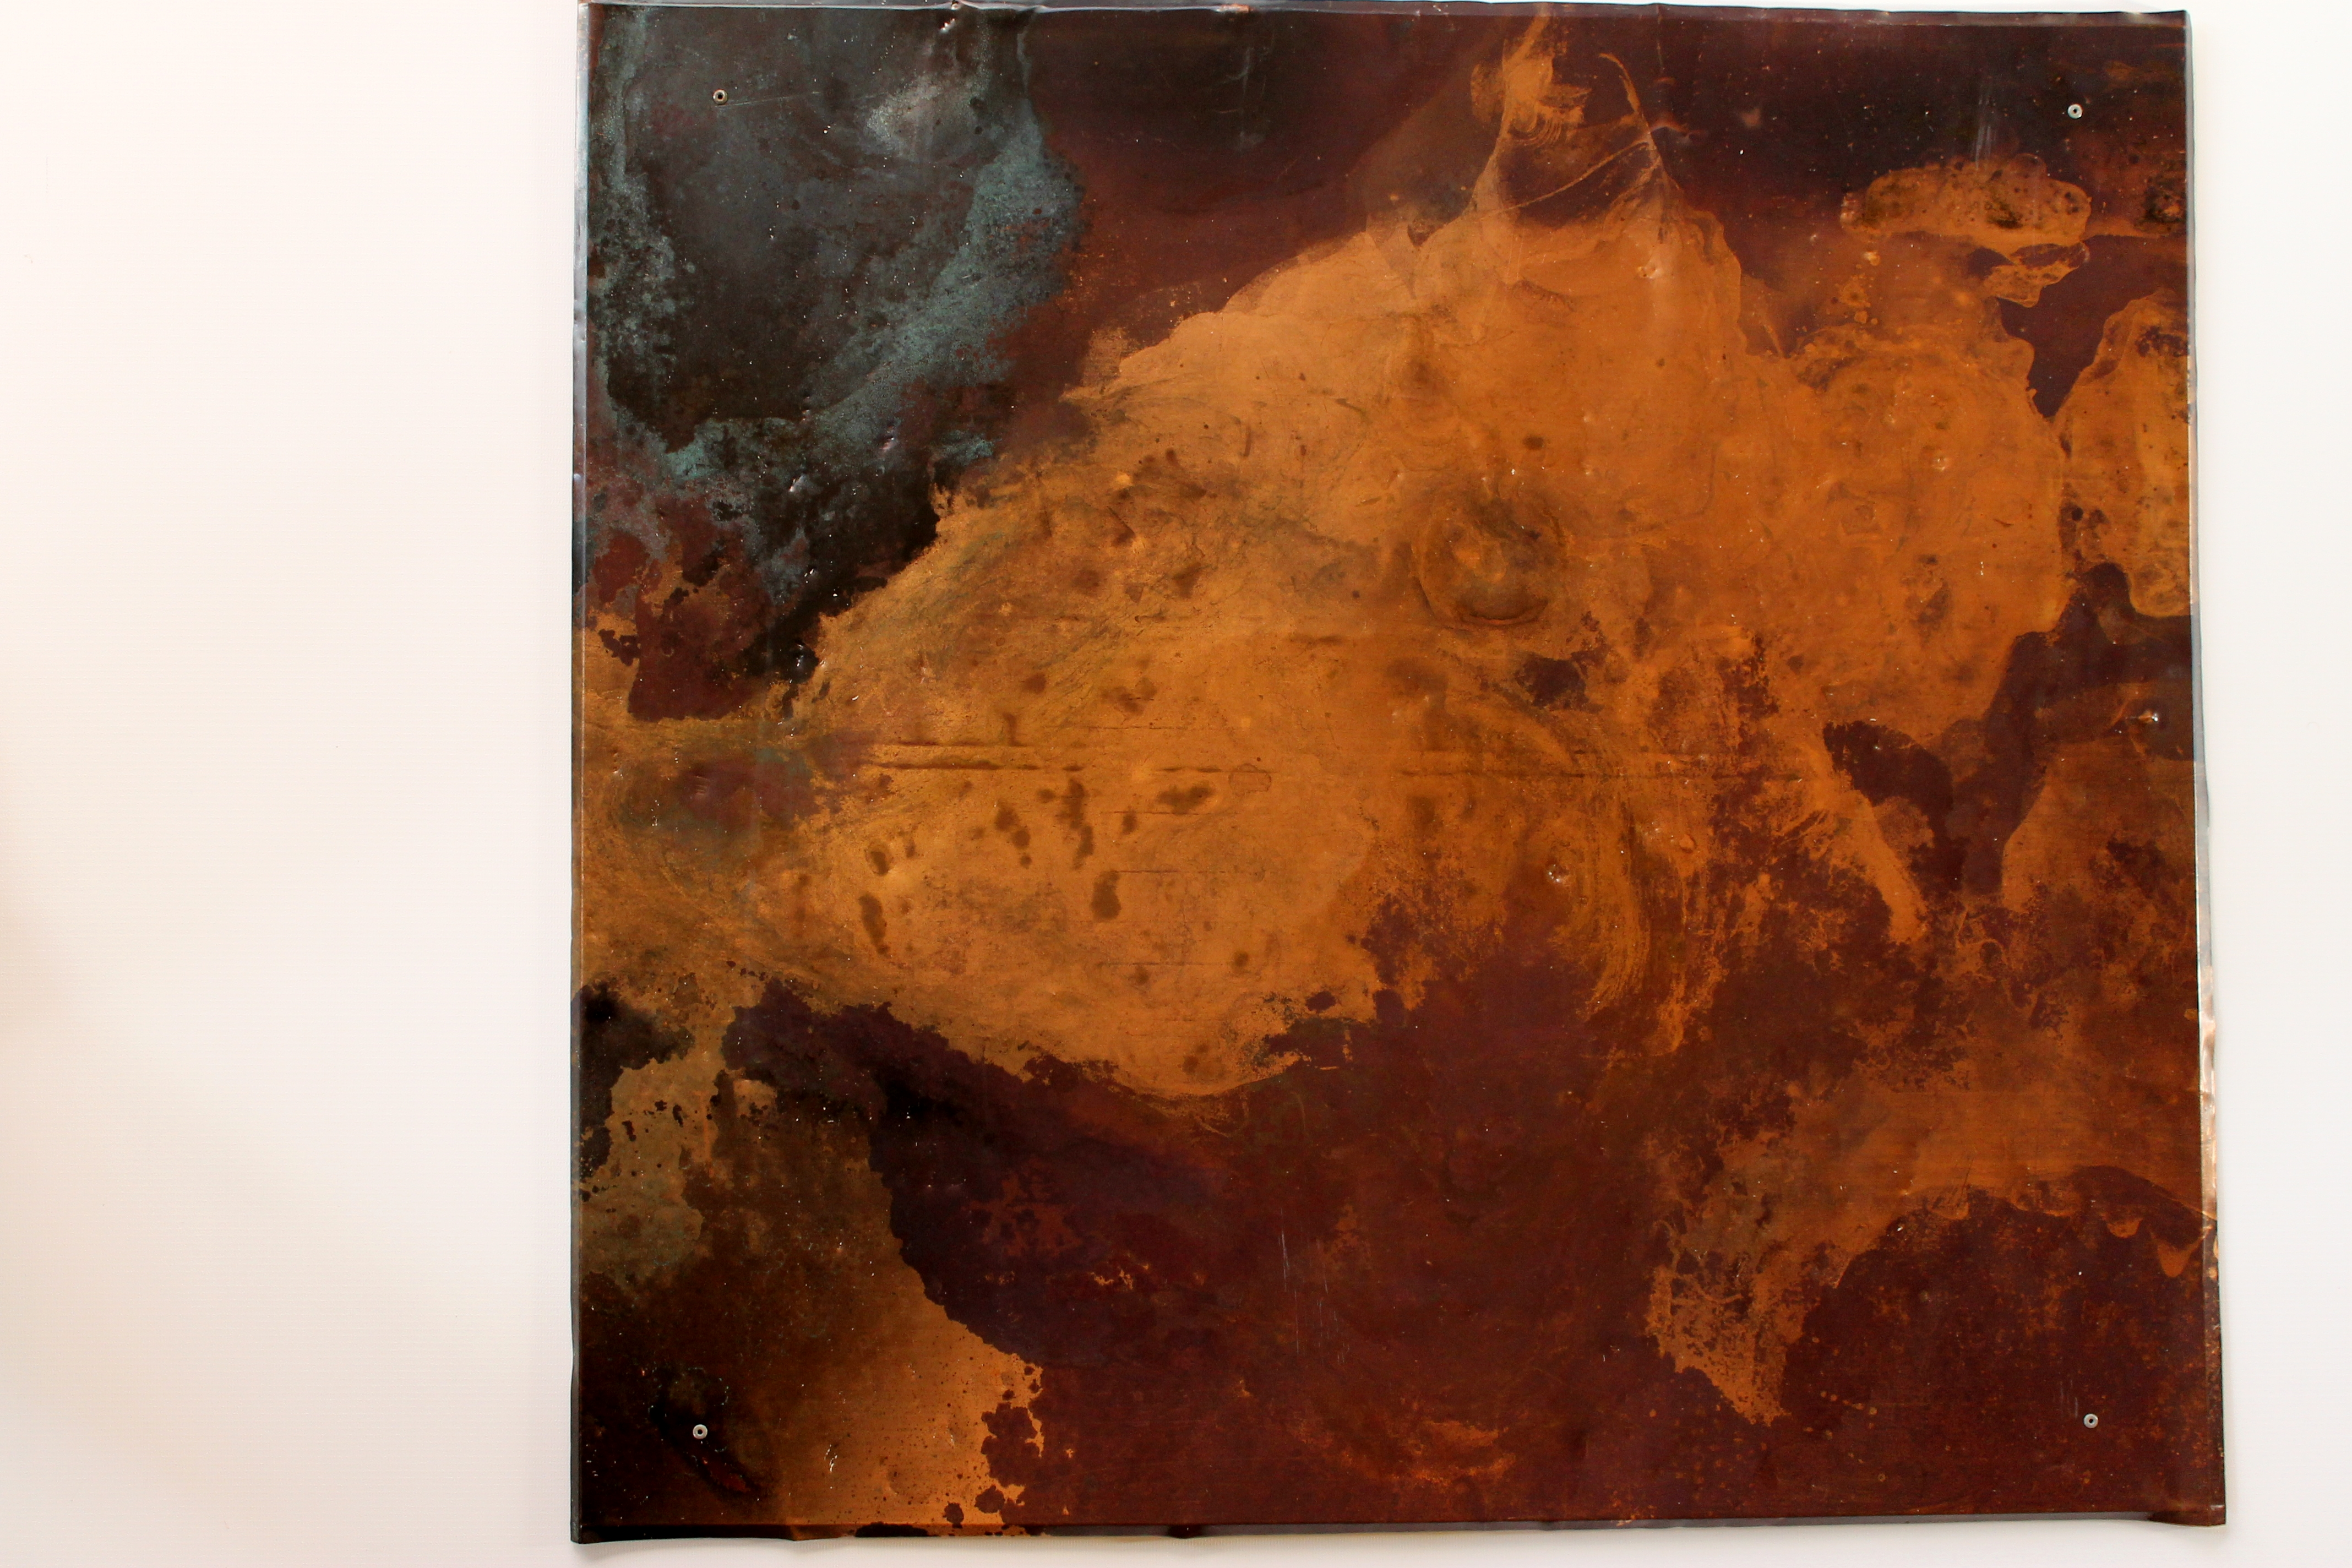 Abstract Copper Wall Sculpture Iii